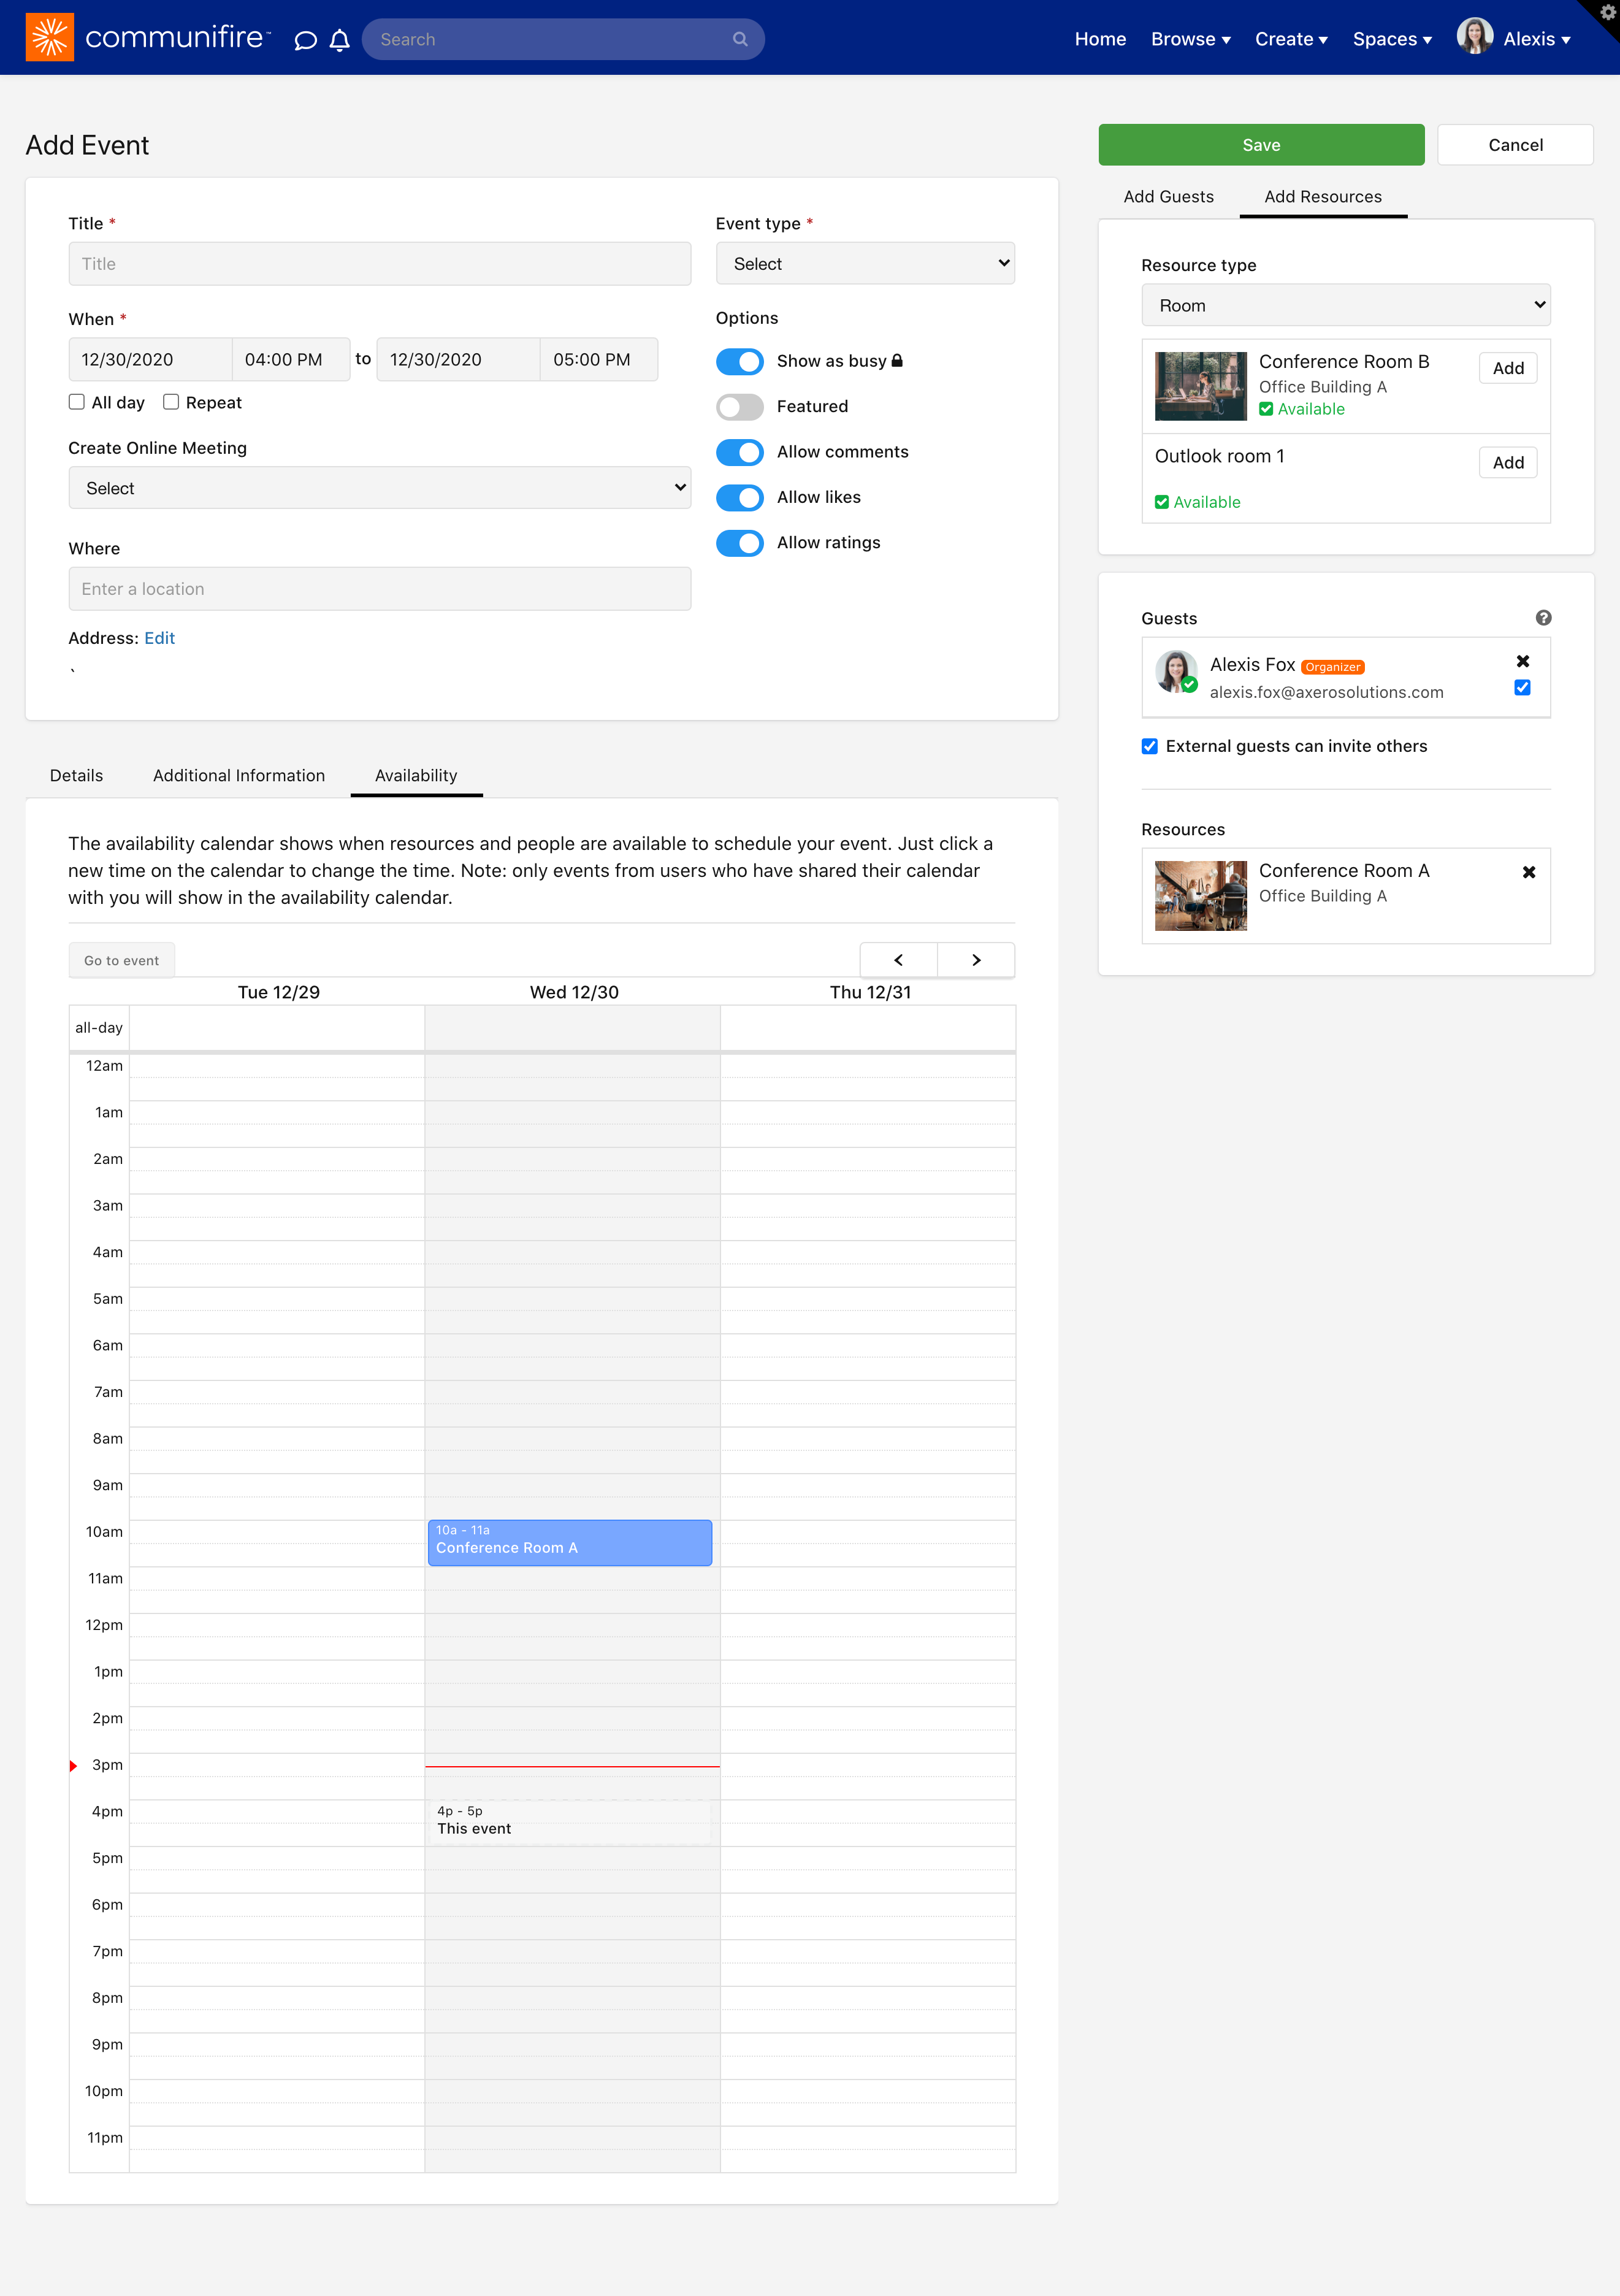 The availability calendar shows the availability of event guests and event resources.